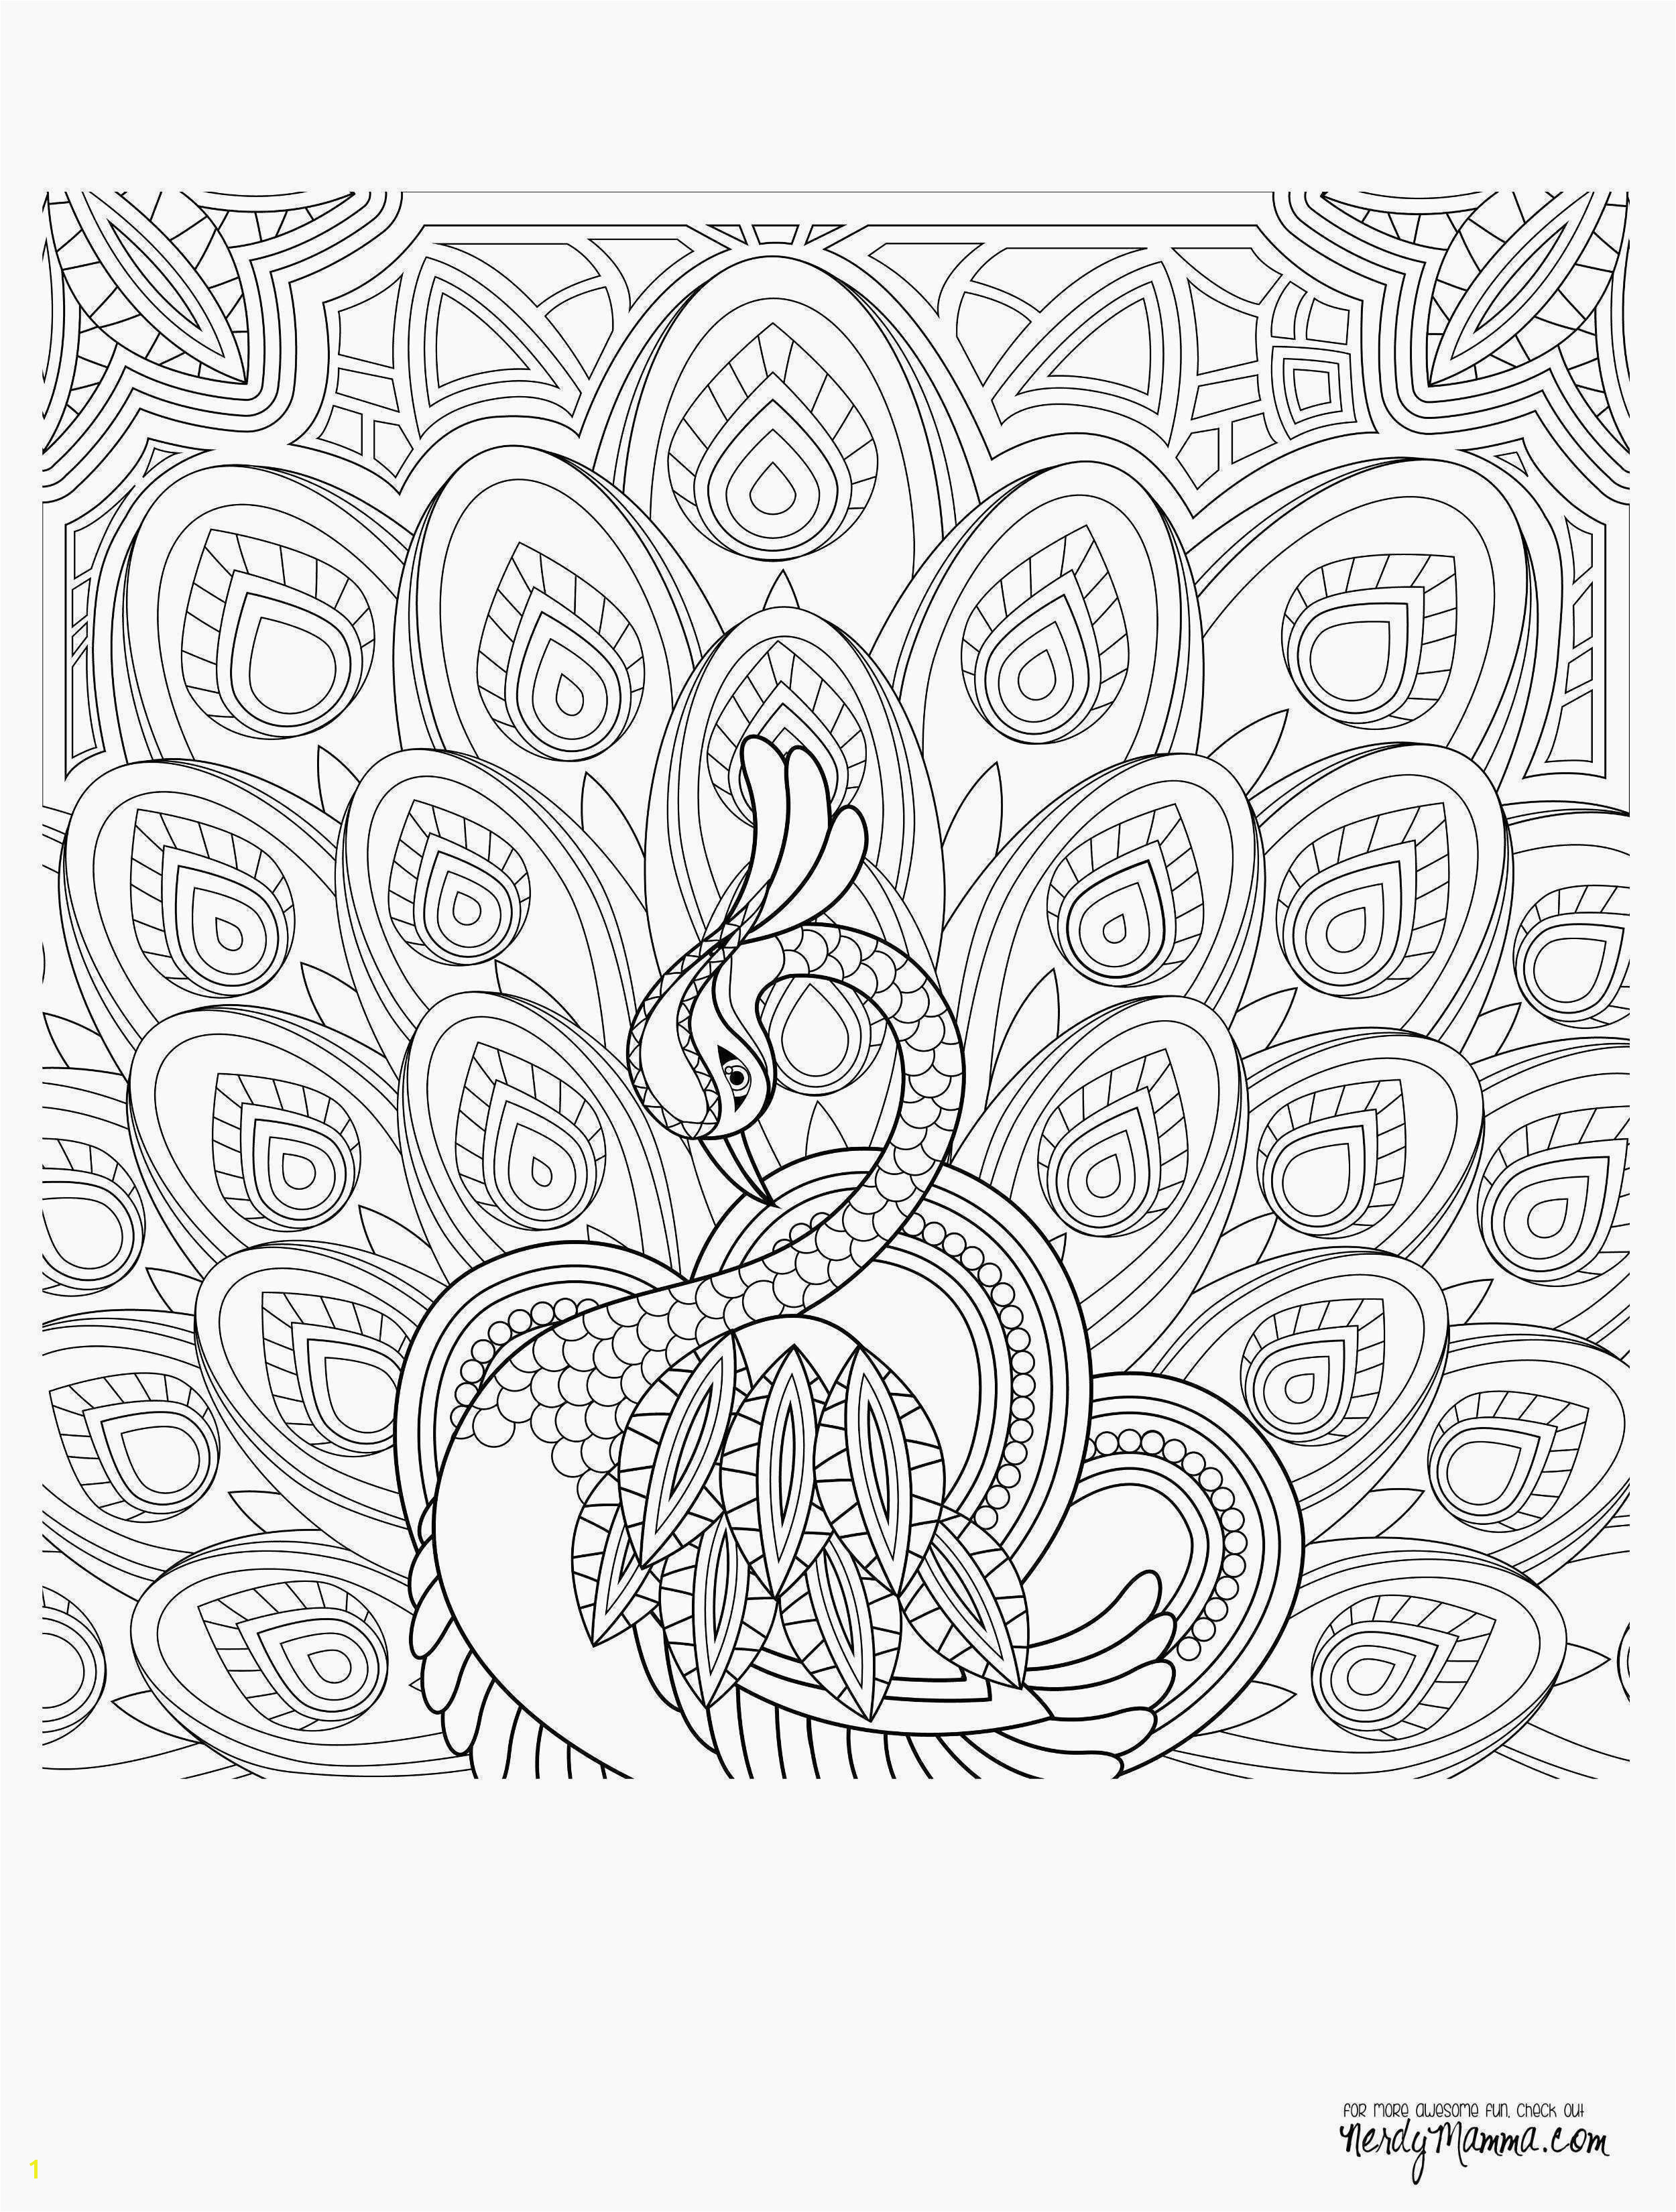 Family Tree Coloring Page for Kids Children S Christmas Party Ideas Beautiful Children S Family Tree